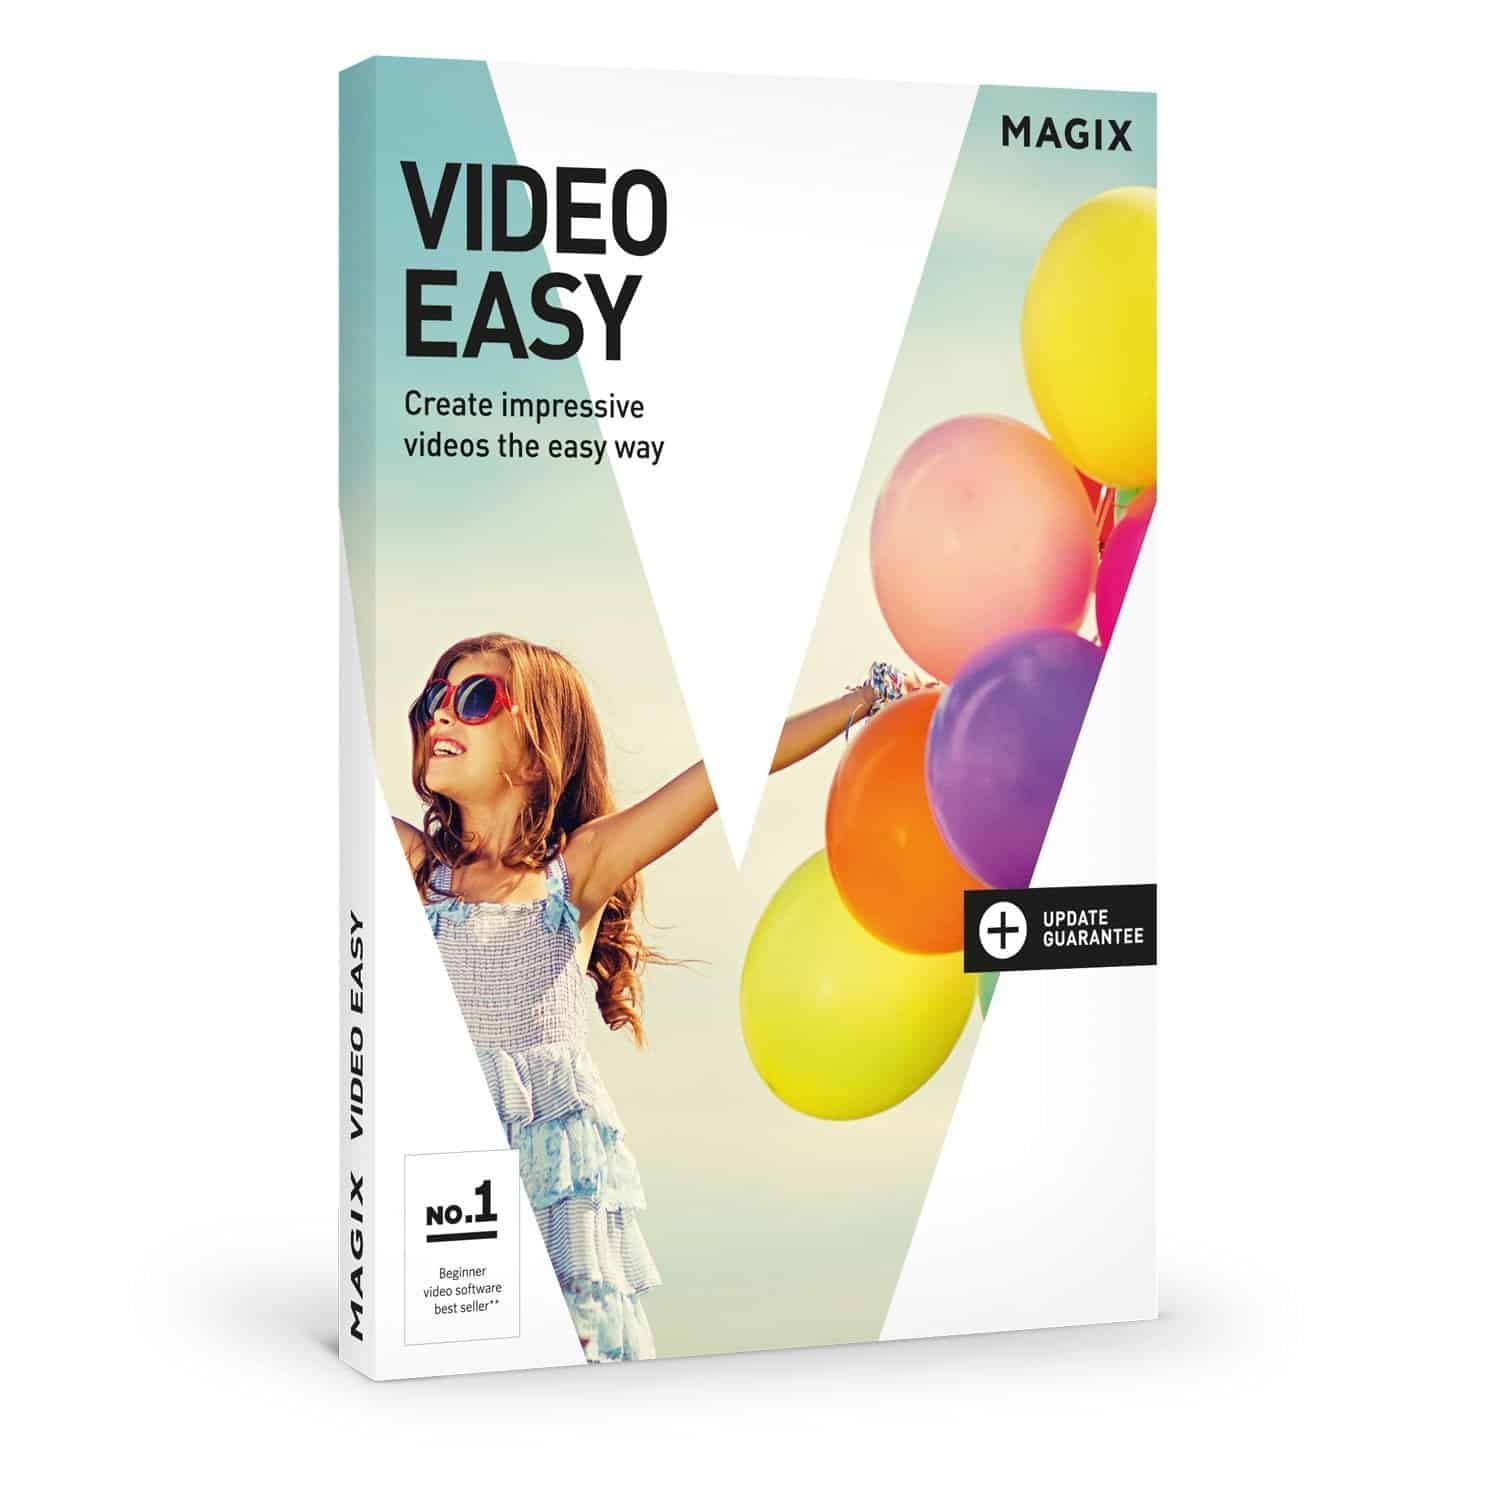 Magix Video Easy 6 Review